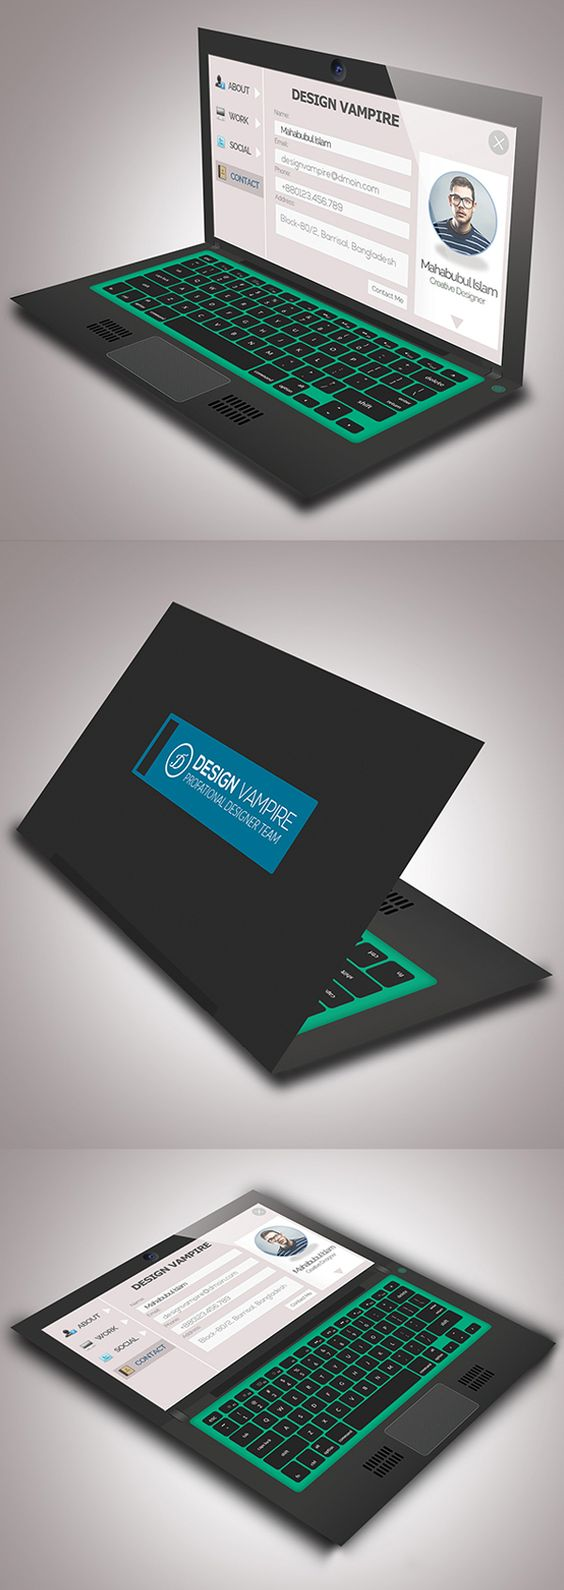 Laptop Business Card #businesscards #psdtemplates #visitingcard #corporatedesign: